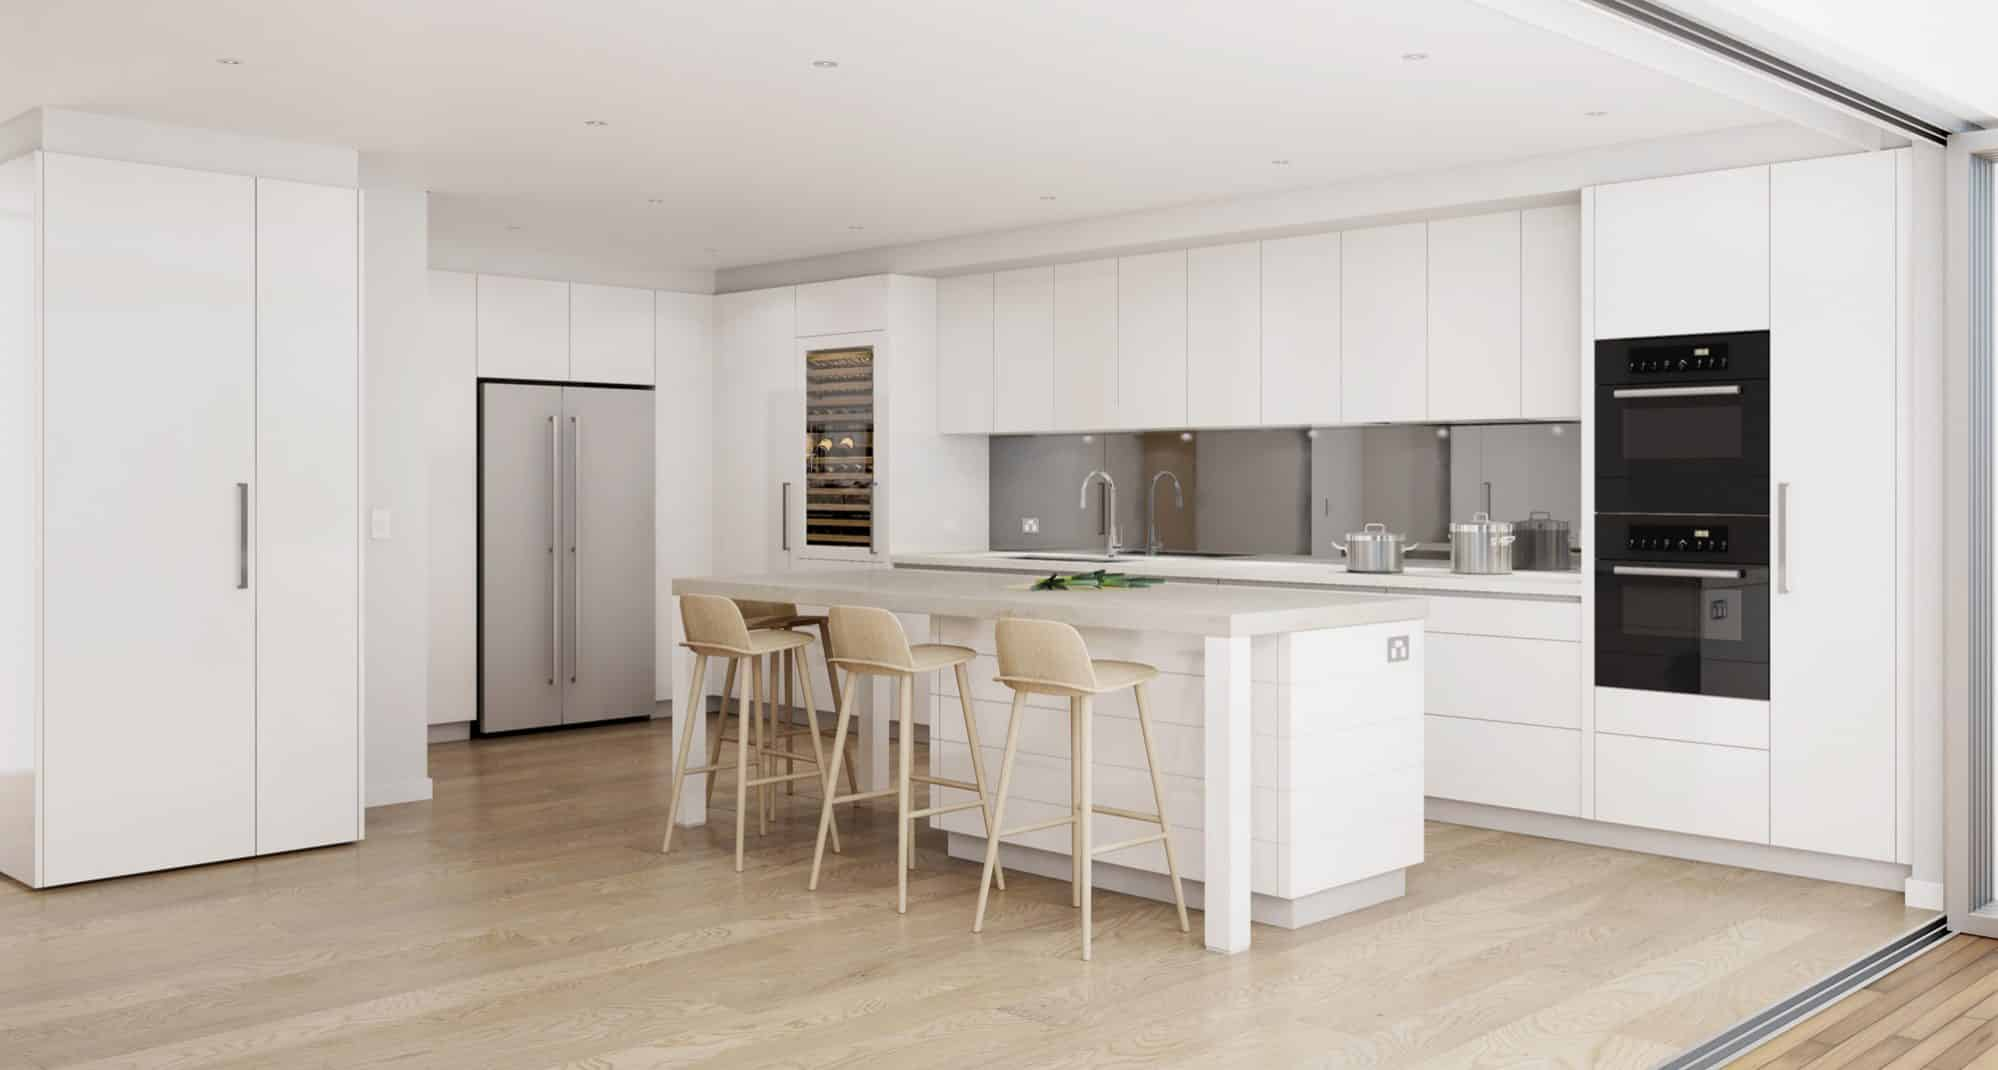 A 3D photo-realistic image of the kitchen design